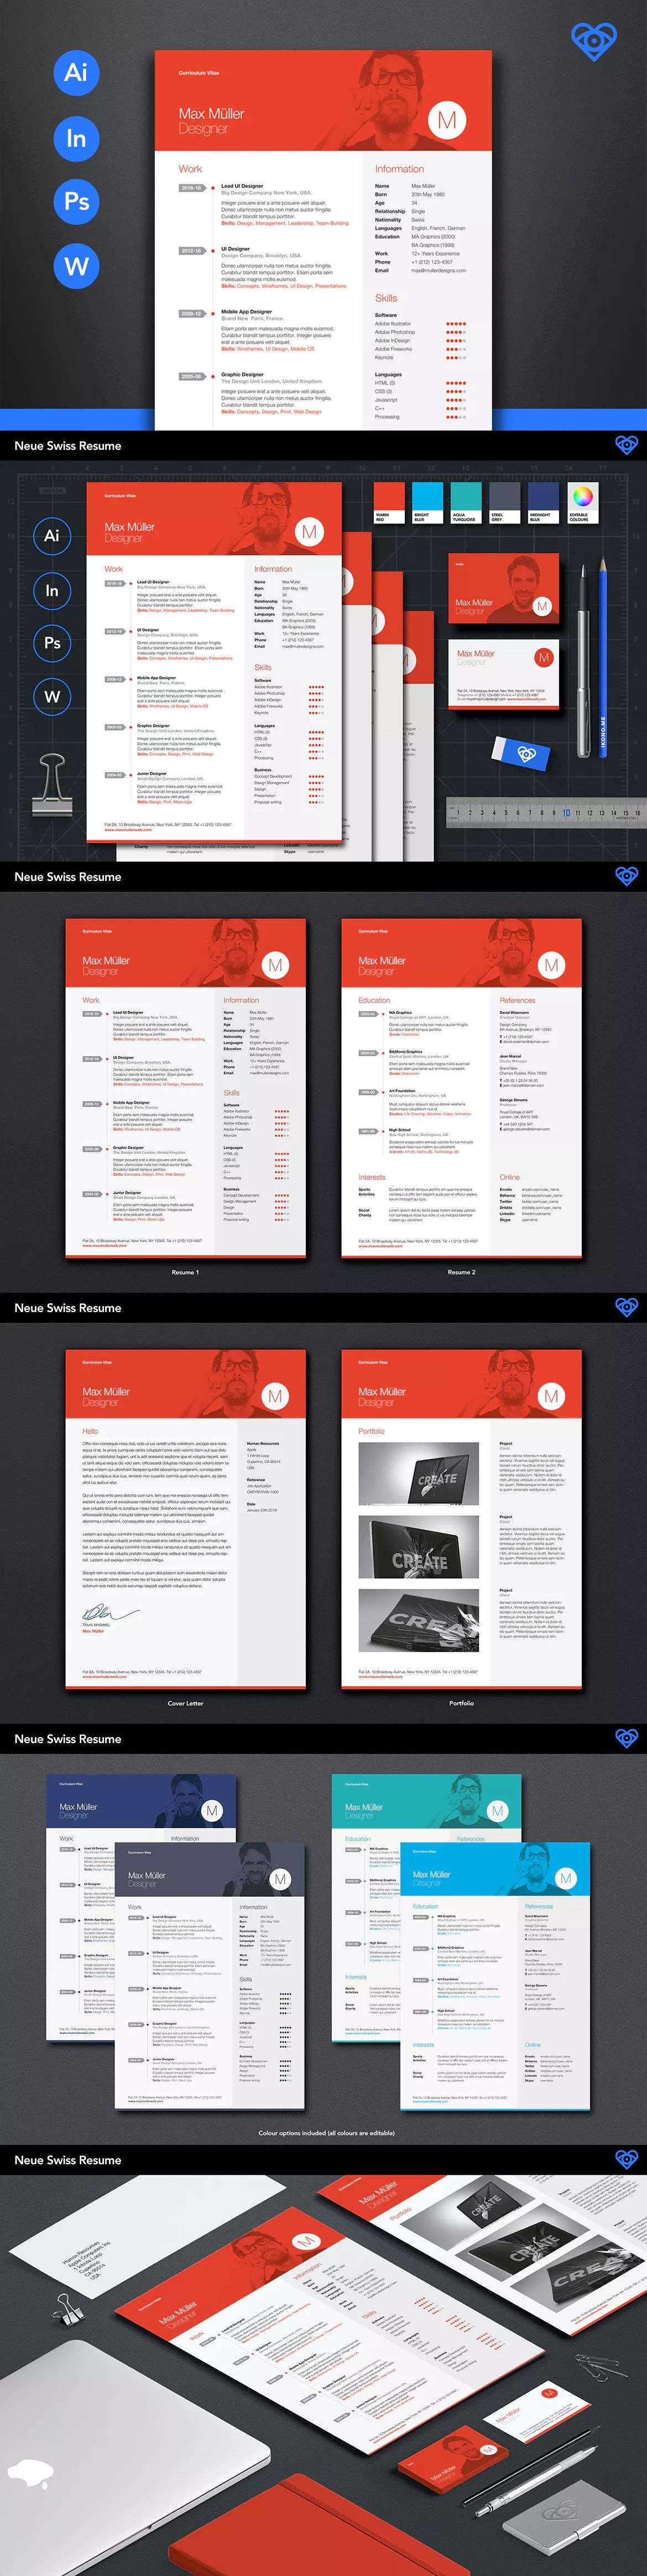 Neue swiss resume cv template ai indd psd ms word resume neue swiss resume cv template ai indd psd ms word yelopaper Image collections